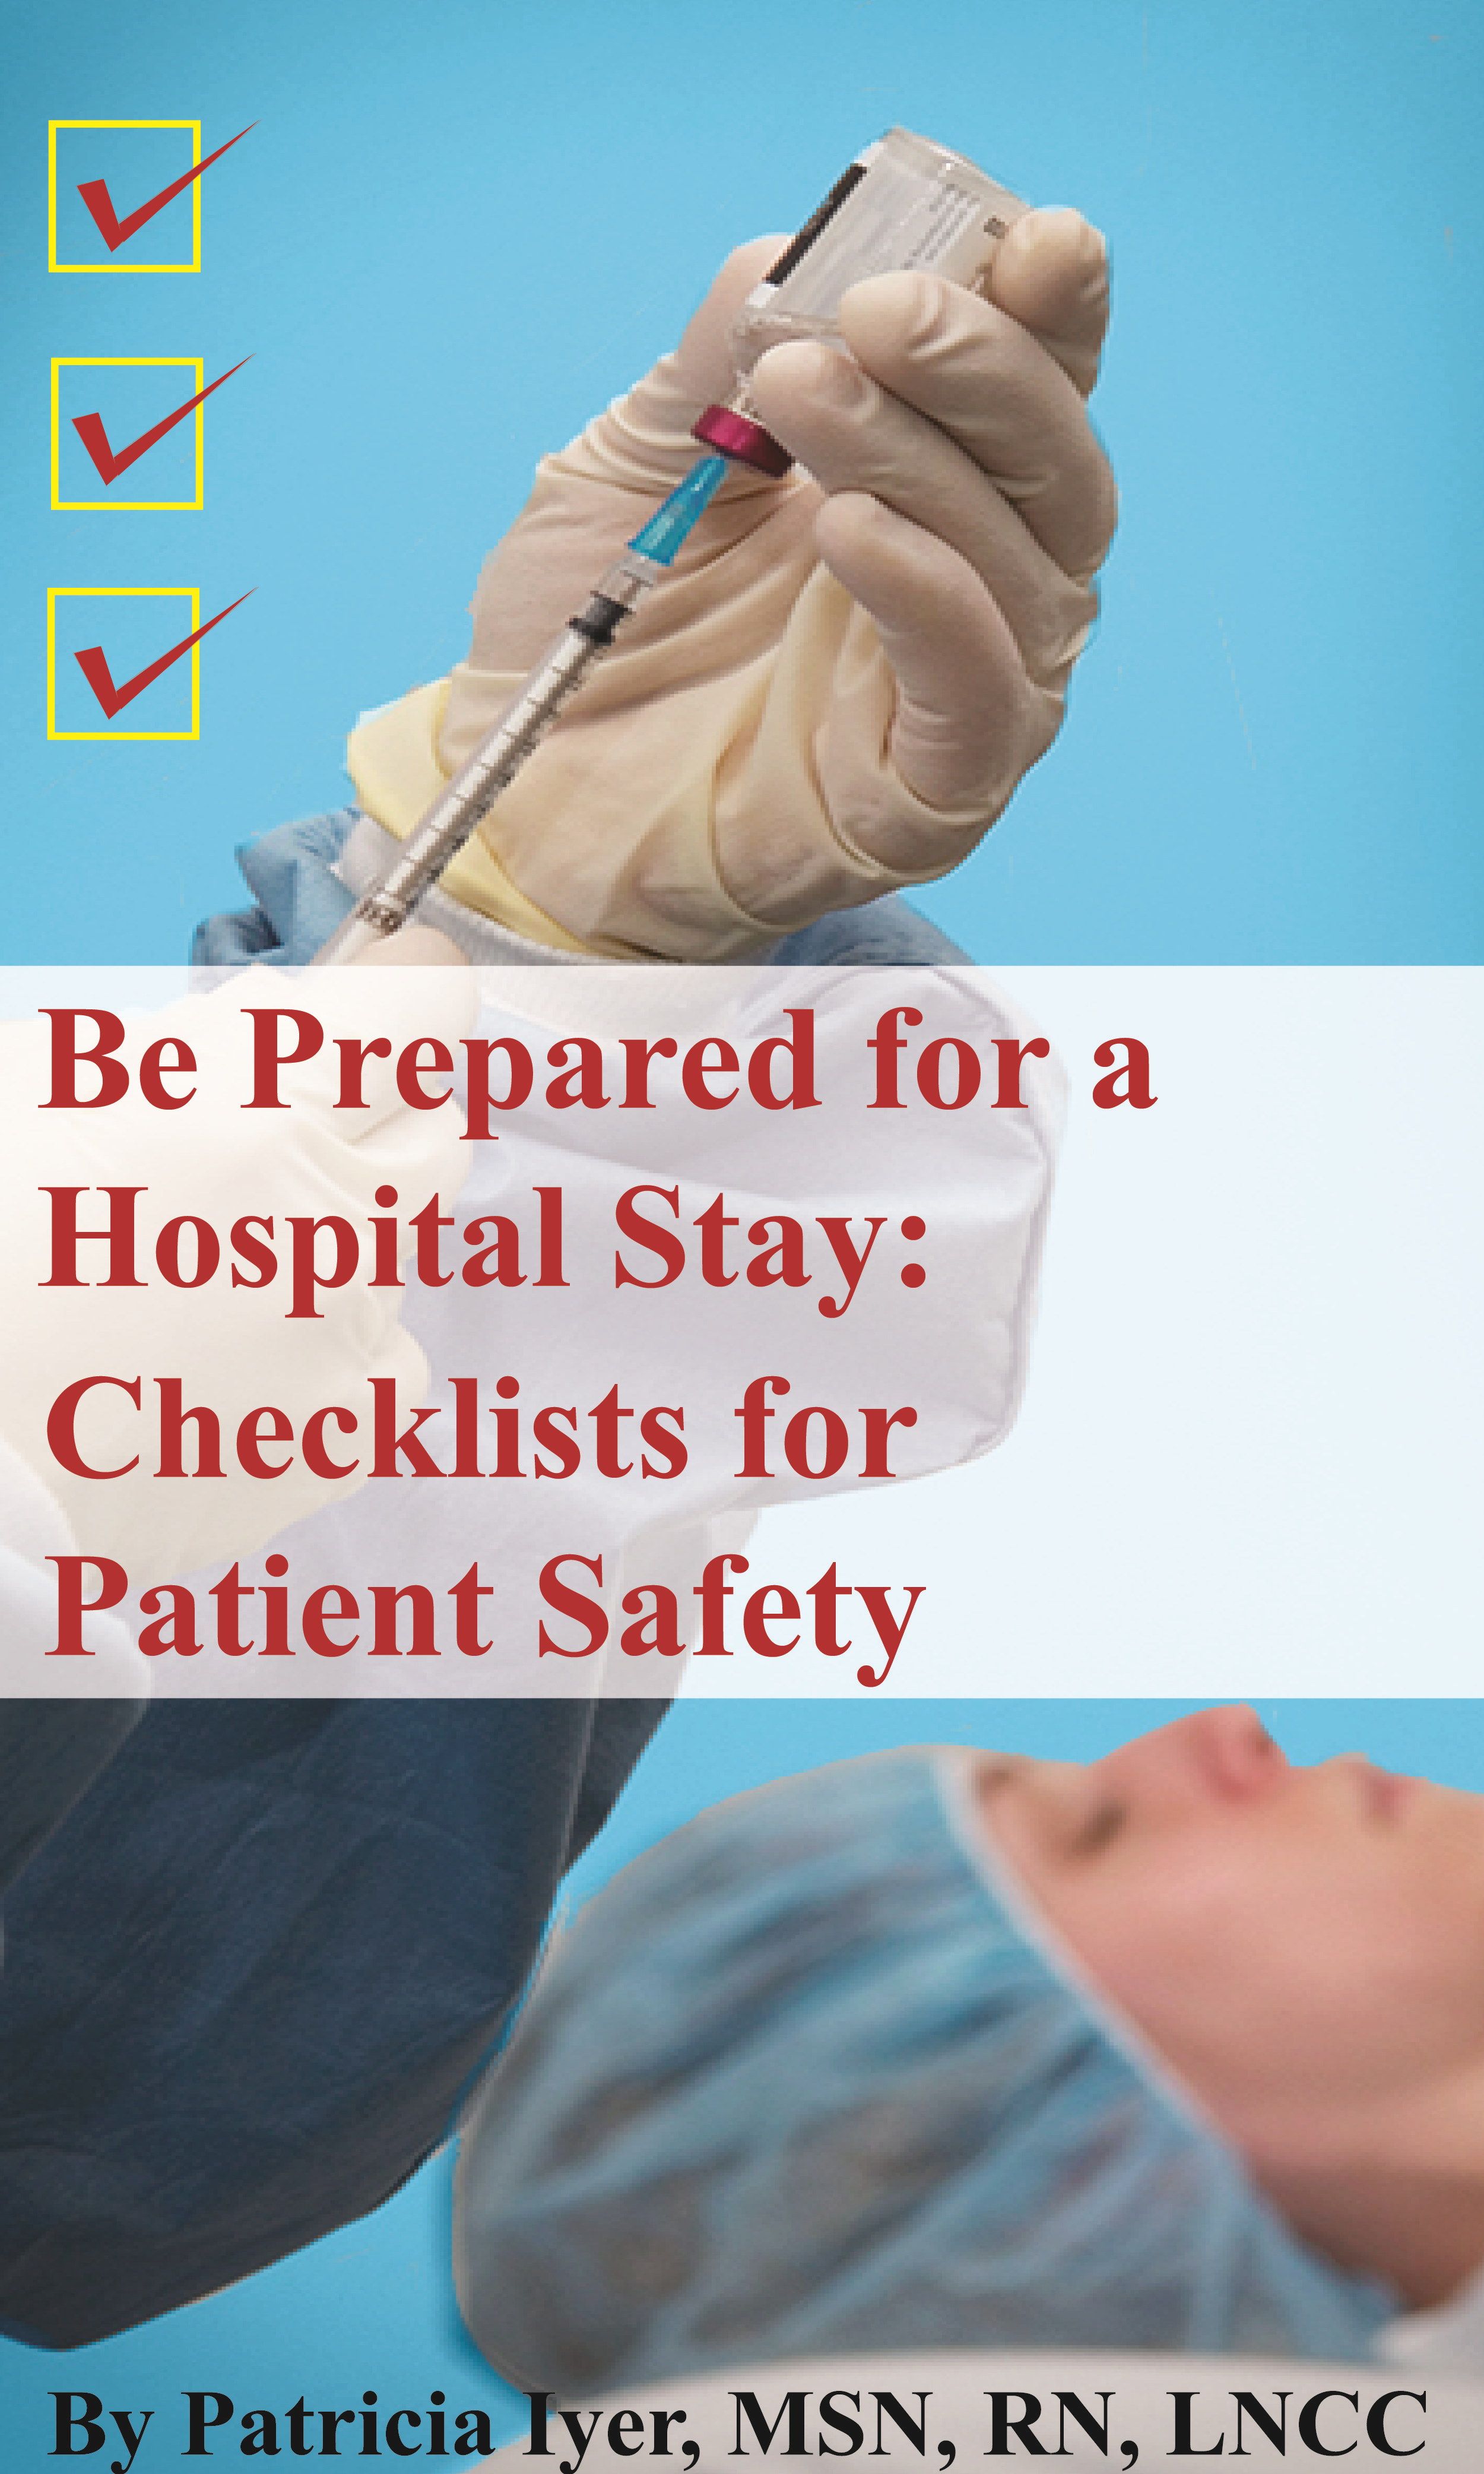 Be Prepared for a Hospital Stay: Checklists for Patient Safety